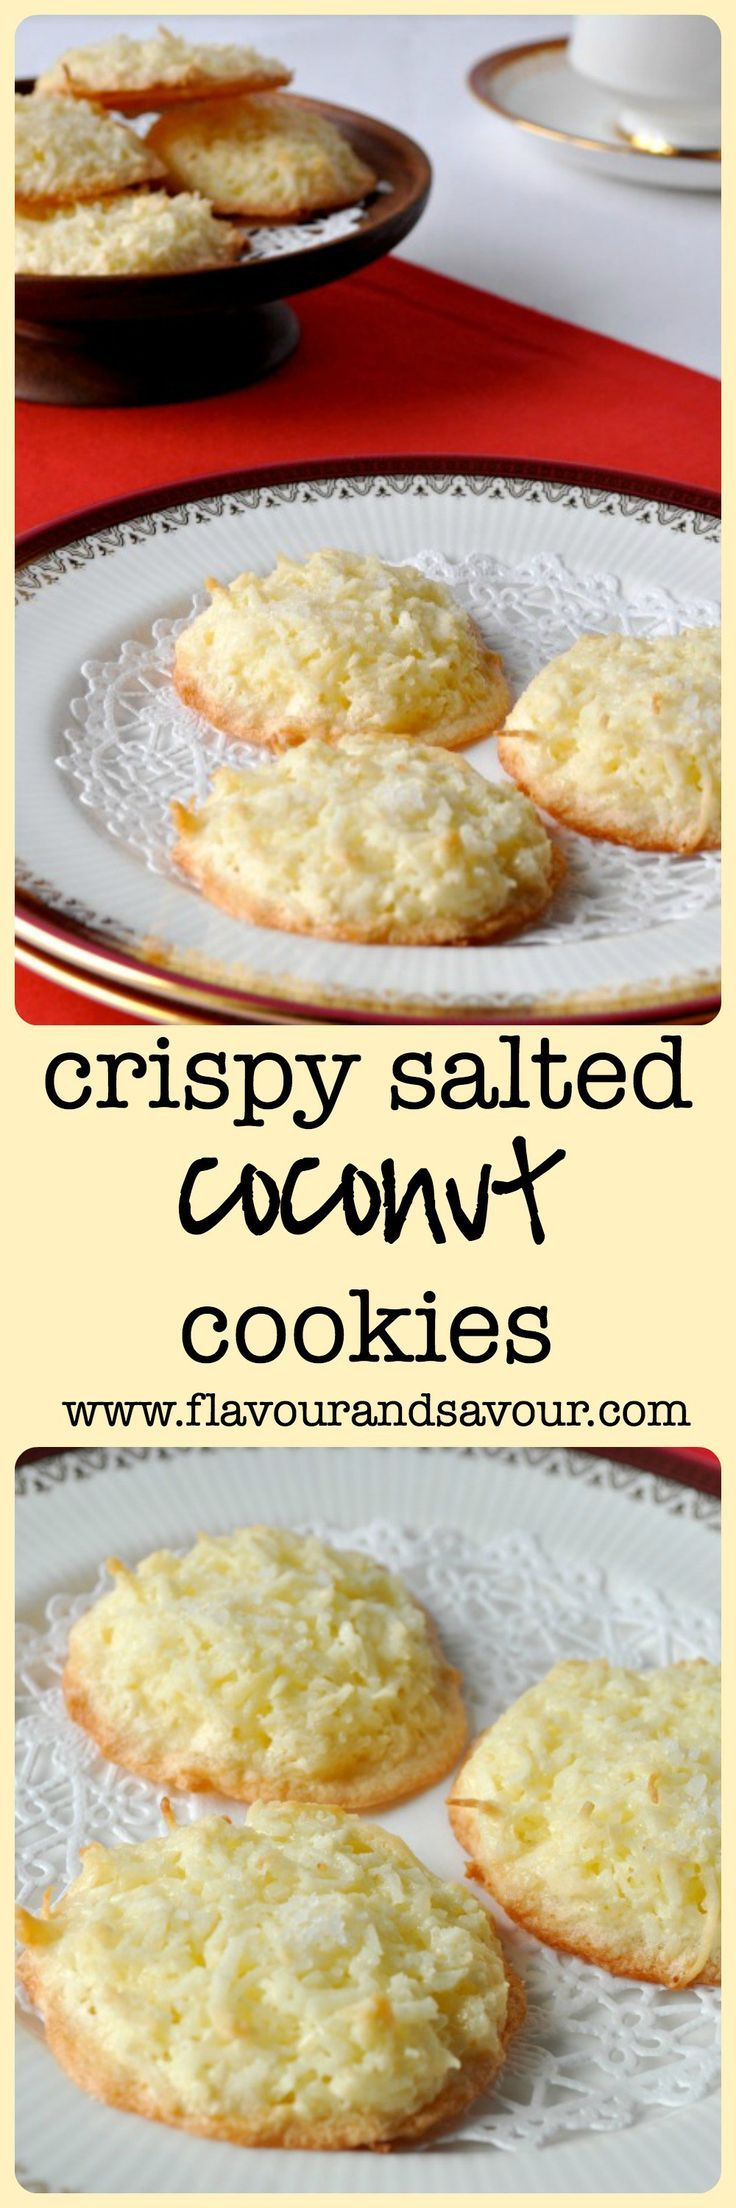 Crispy Salted Coconut Cookies. First to disappear from the cookie tray. Grain-free. So simple, so good!